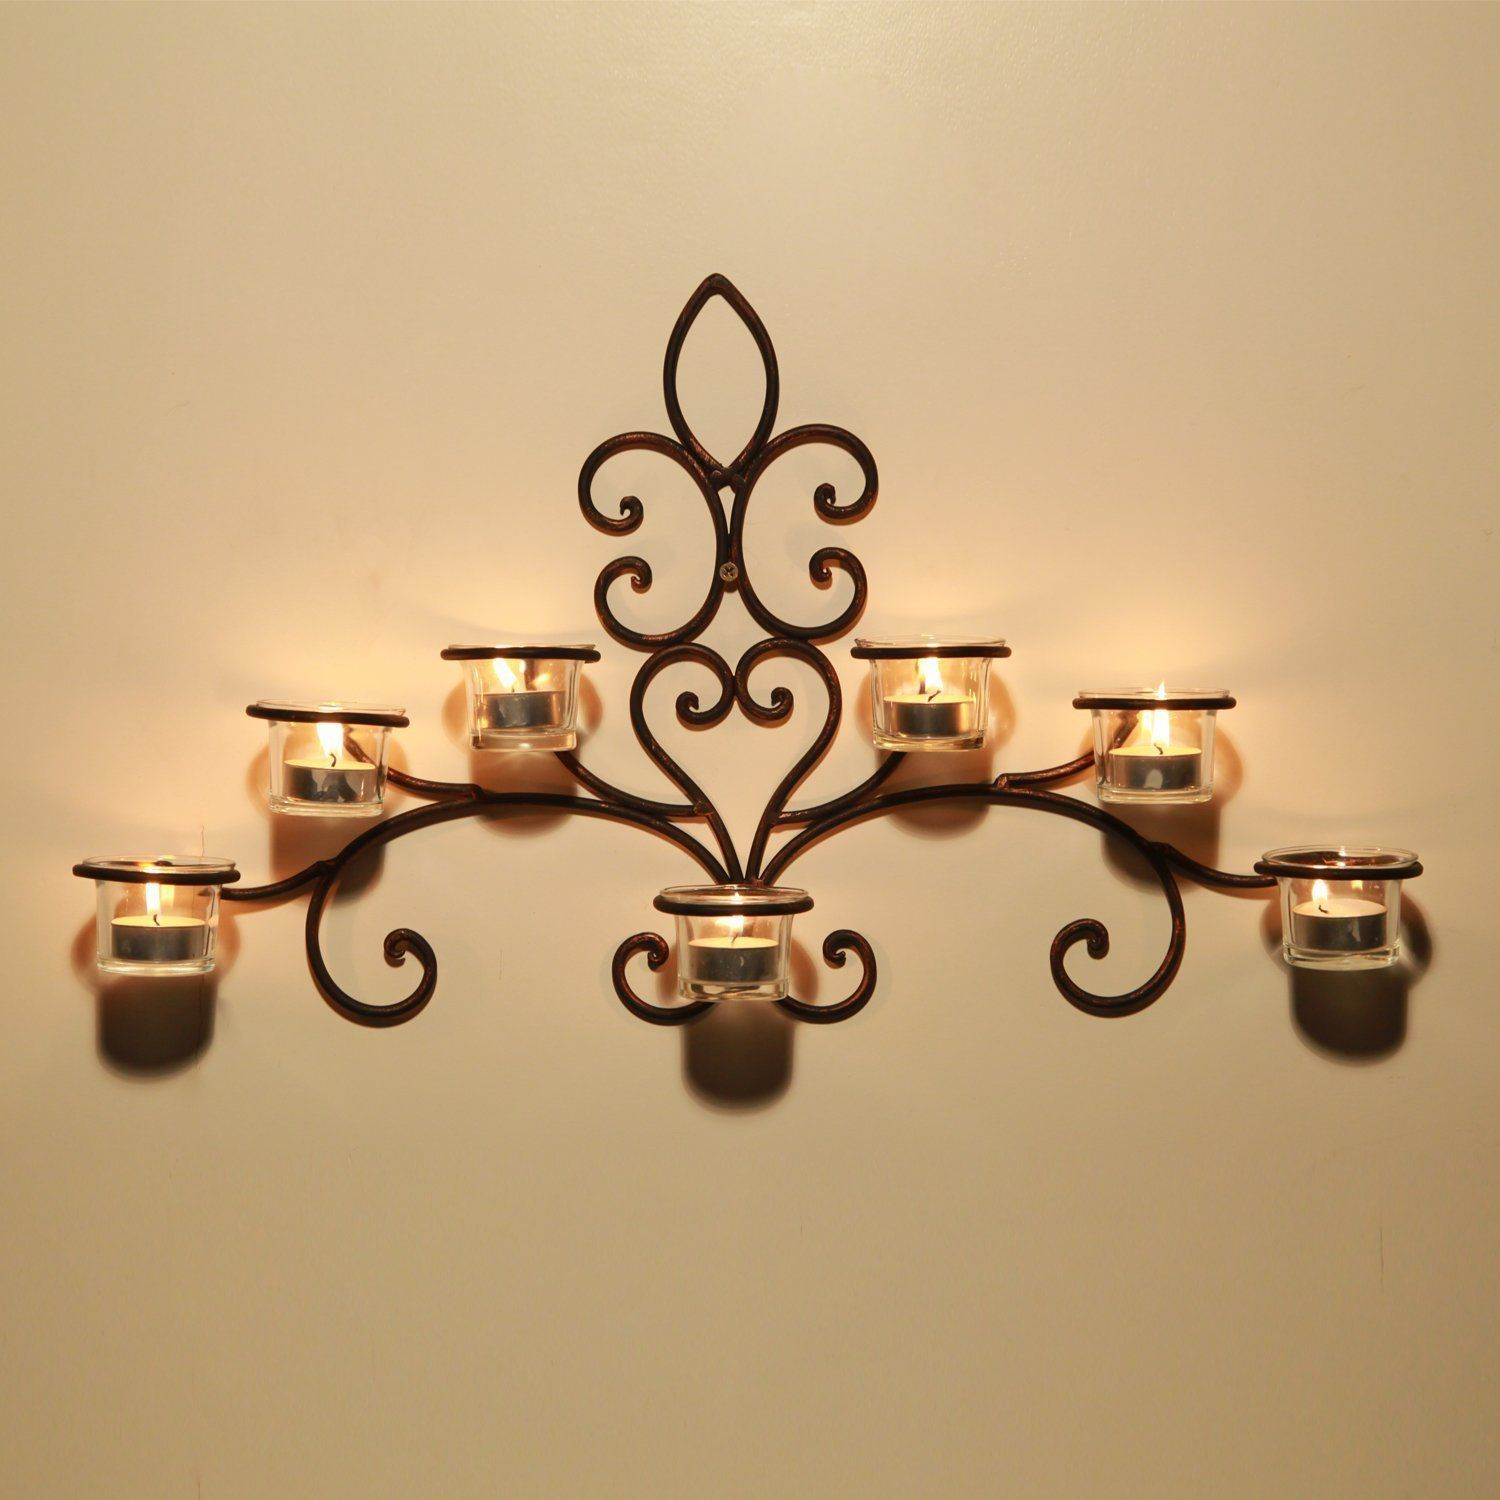 Adeco iron and glass horizontal wallhanging light scrolled candle